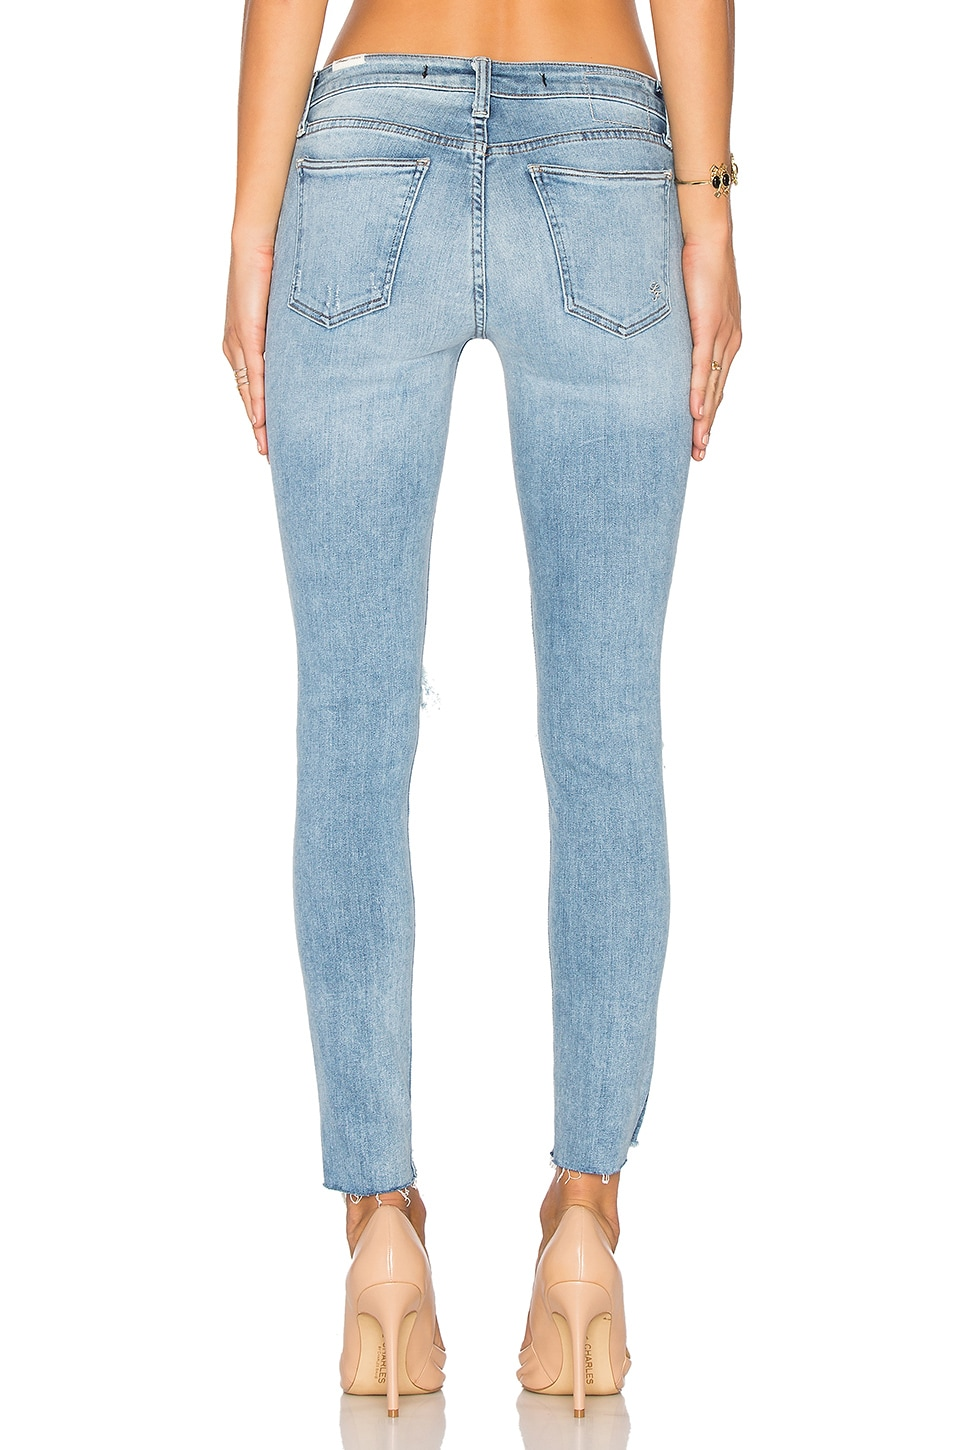 Ricky Skinny Jean, view 3, click to view large image.